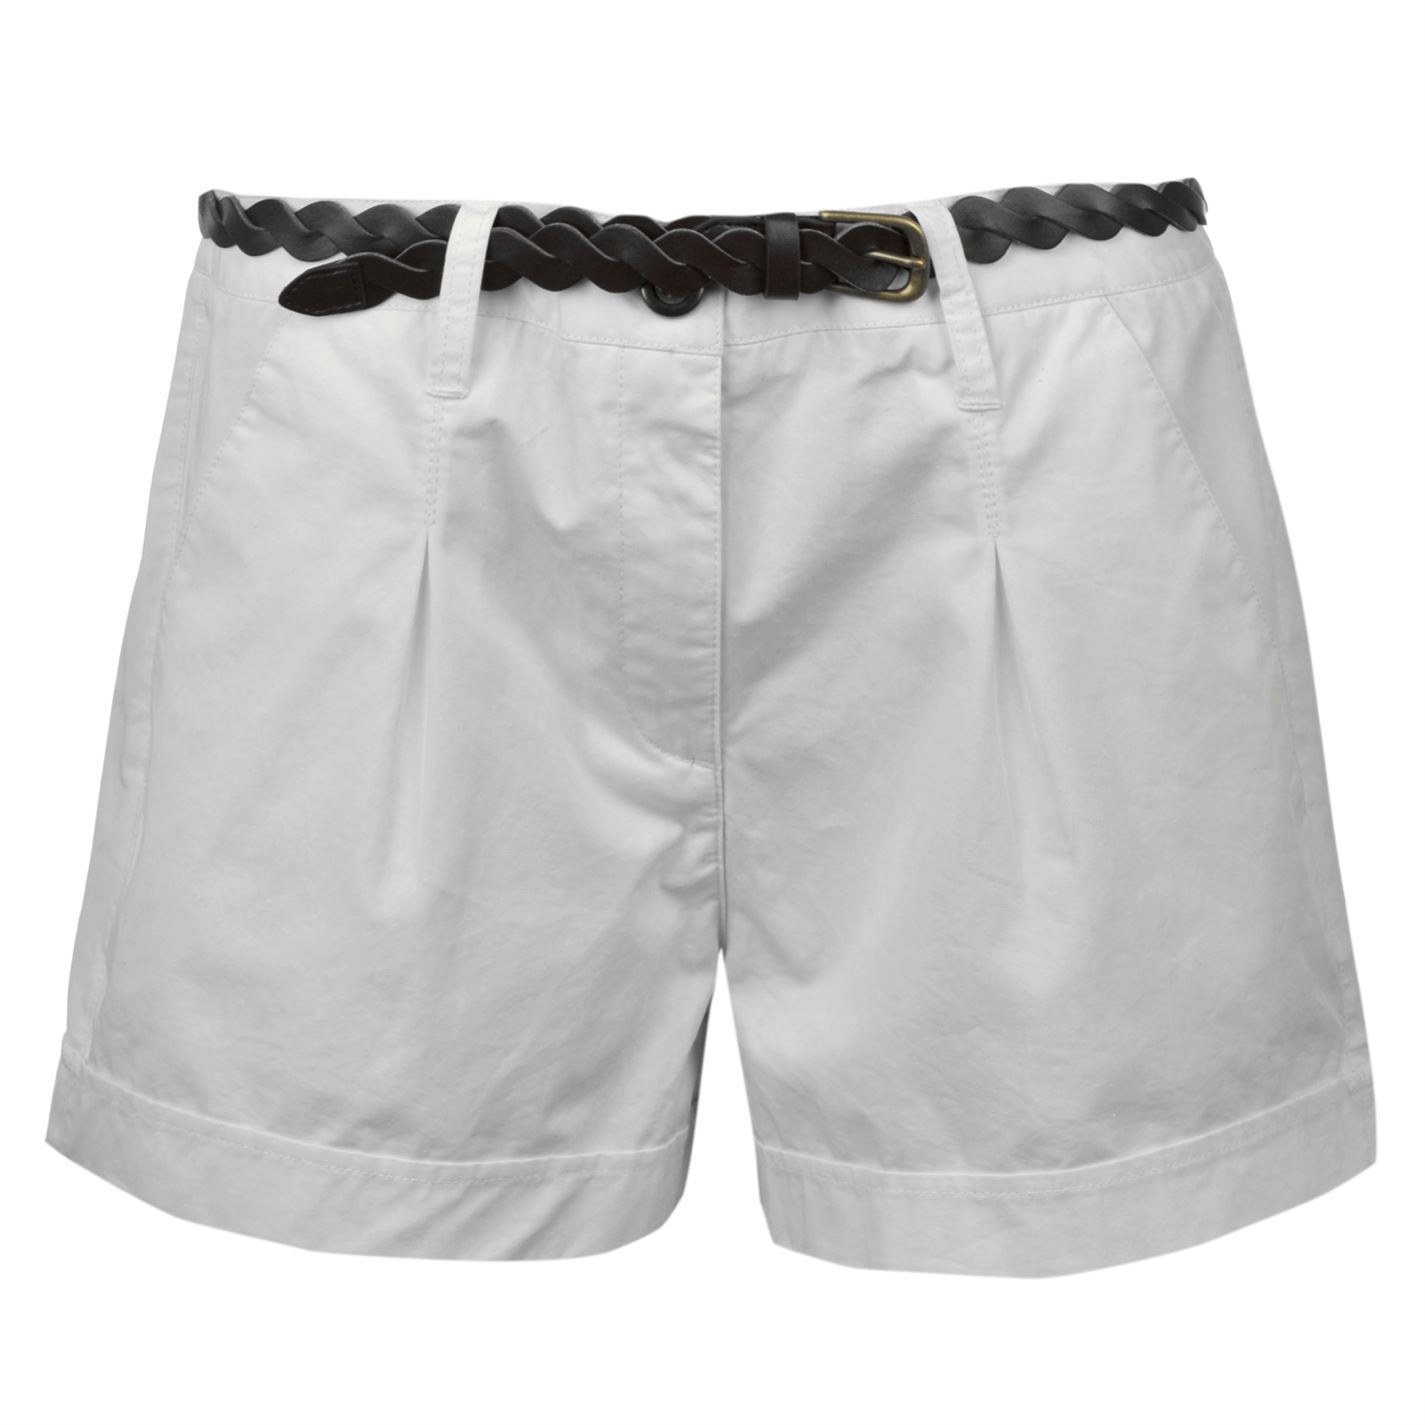 Ladies White Chino Shorts